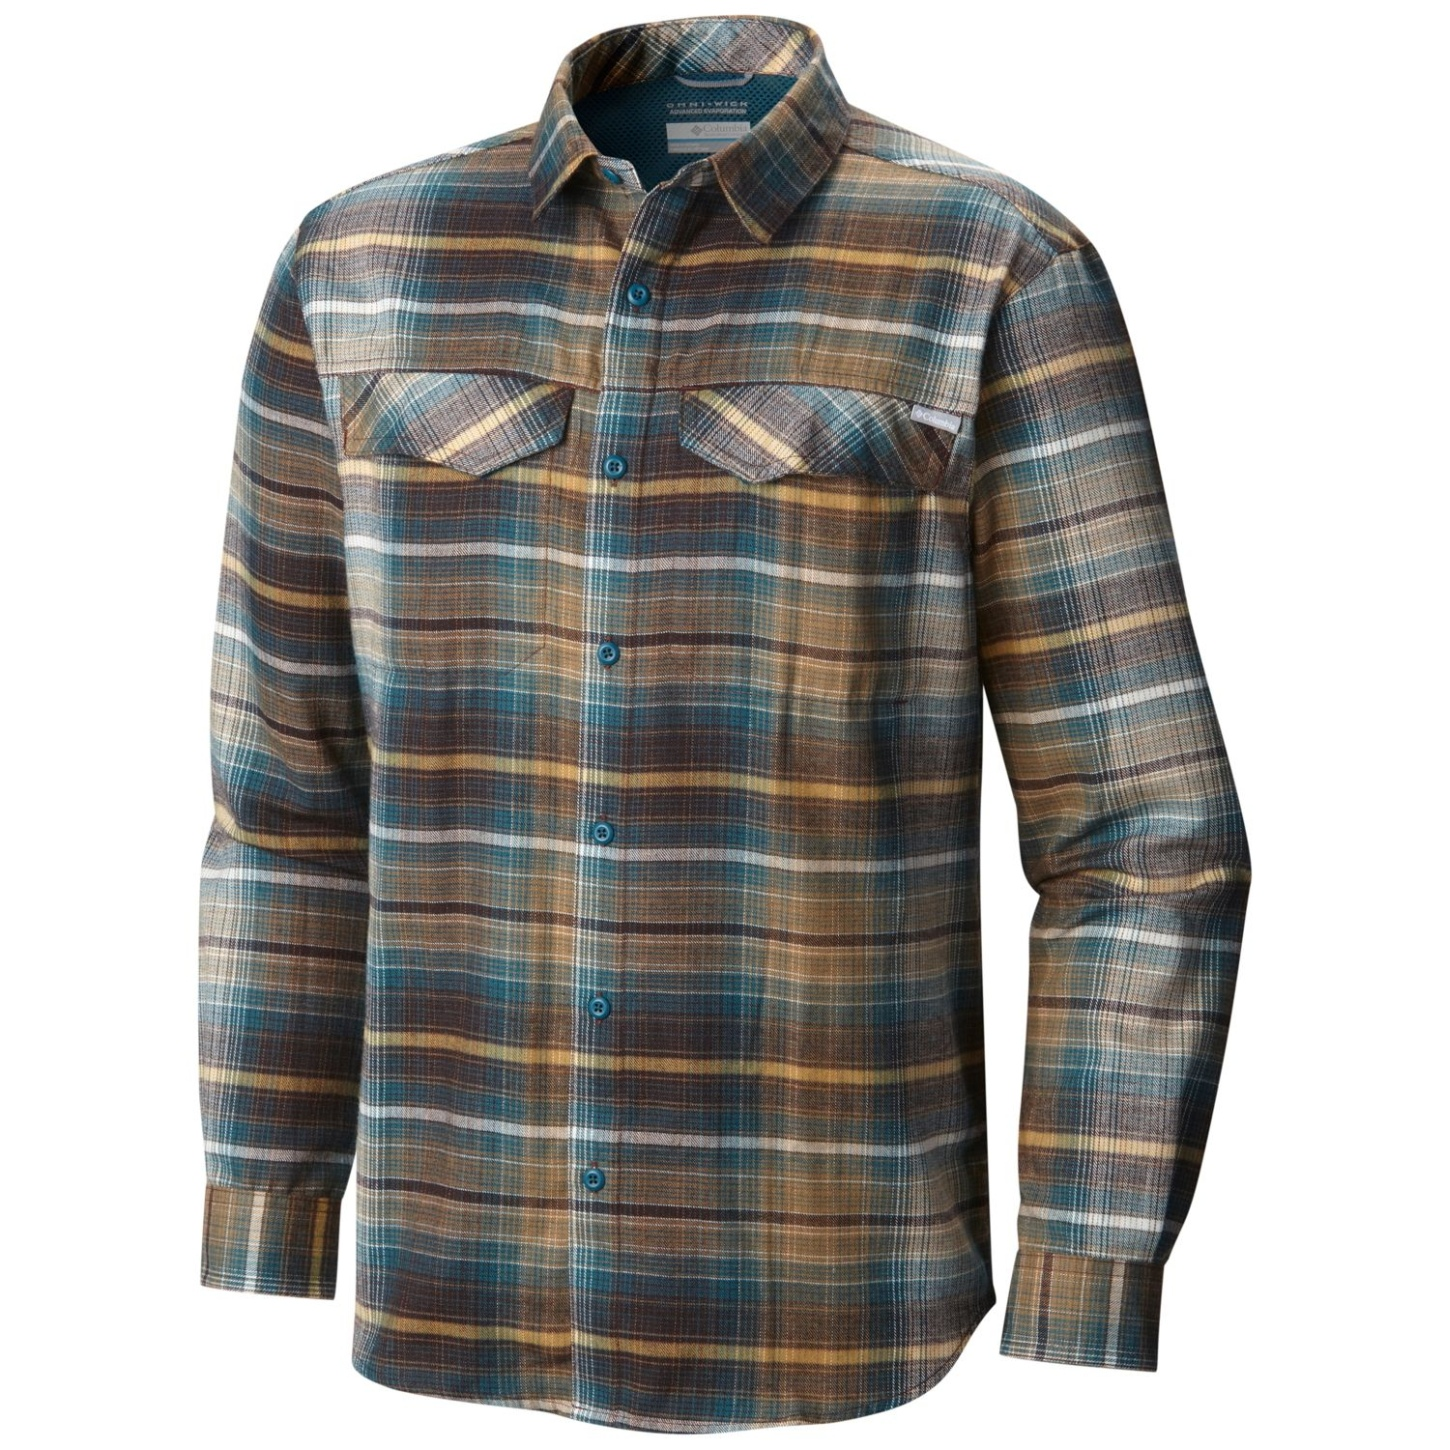 b20721fced7 Columbia Men's Silver Ridge Flannel Long Sleeve Shirt New Cinder Ombre Plaid -30